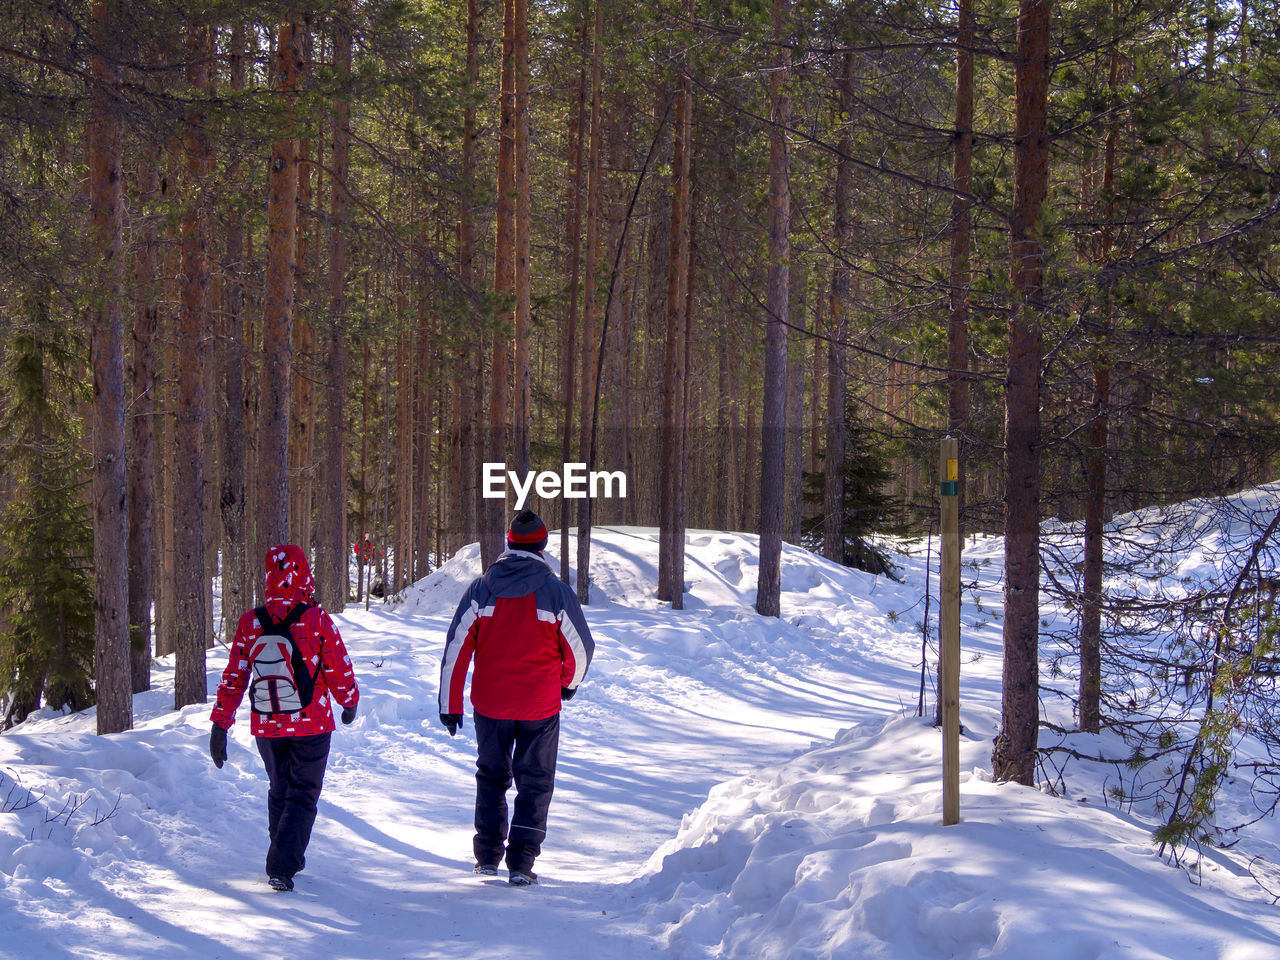 Rear View Of People Walking On Snow Covered Land Amidst Tree Trunks